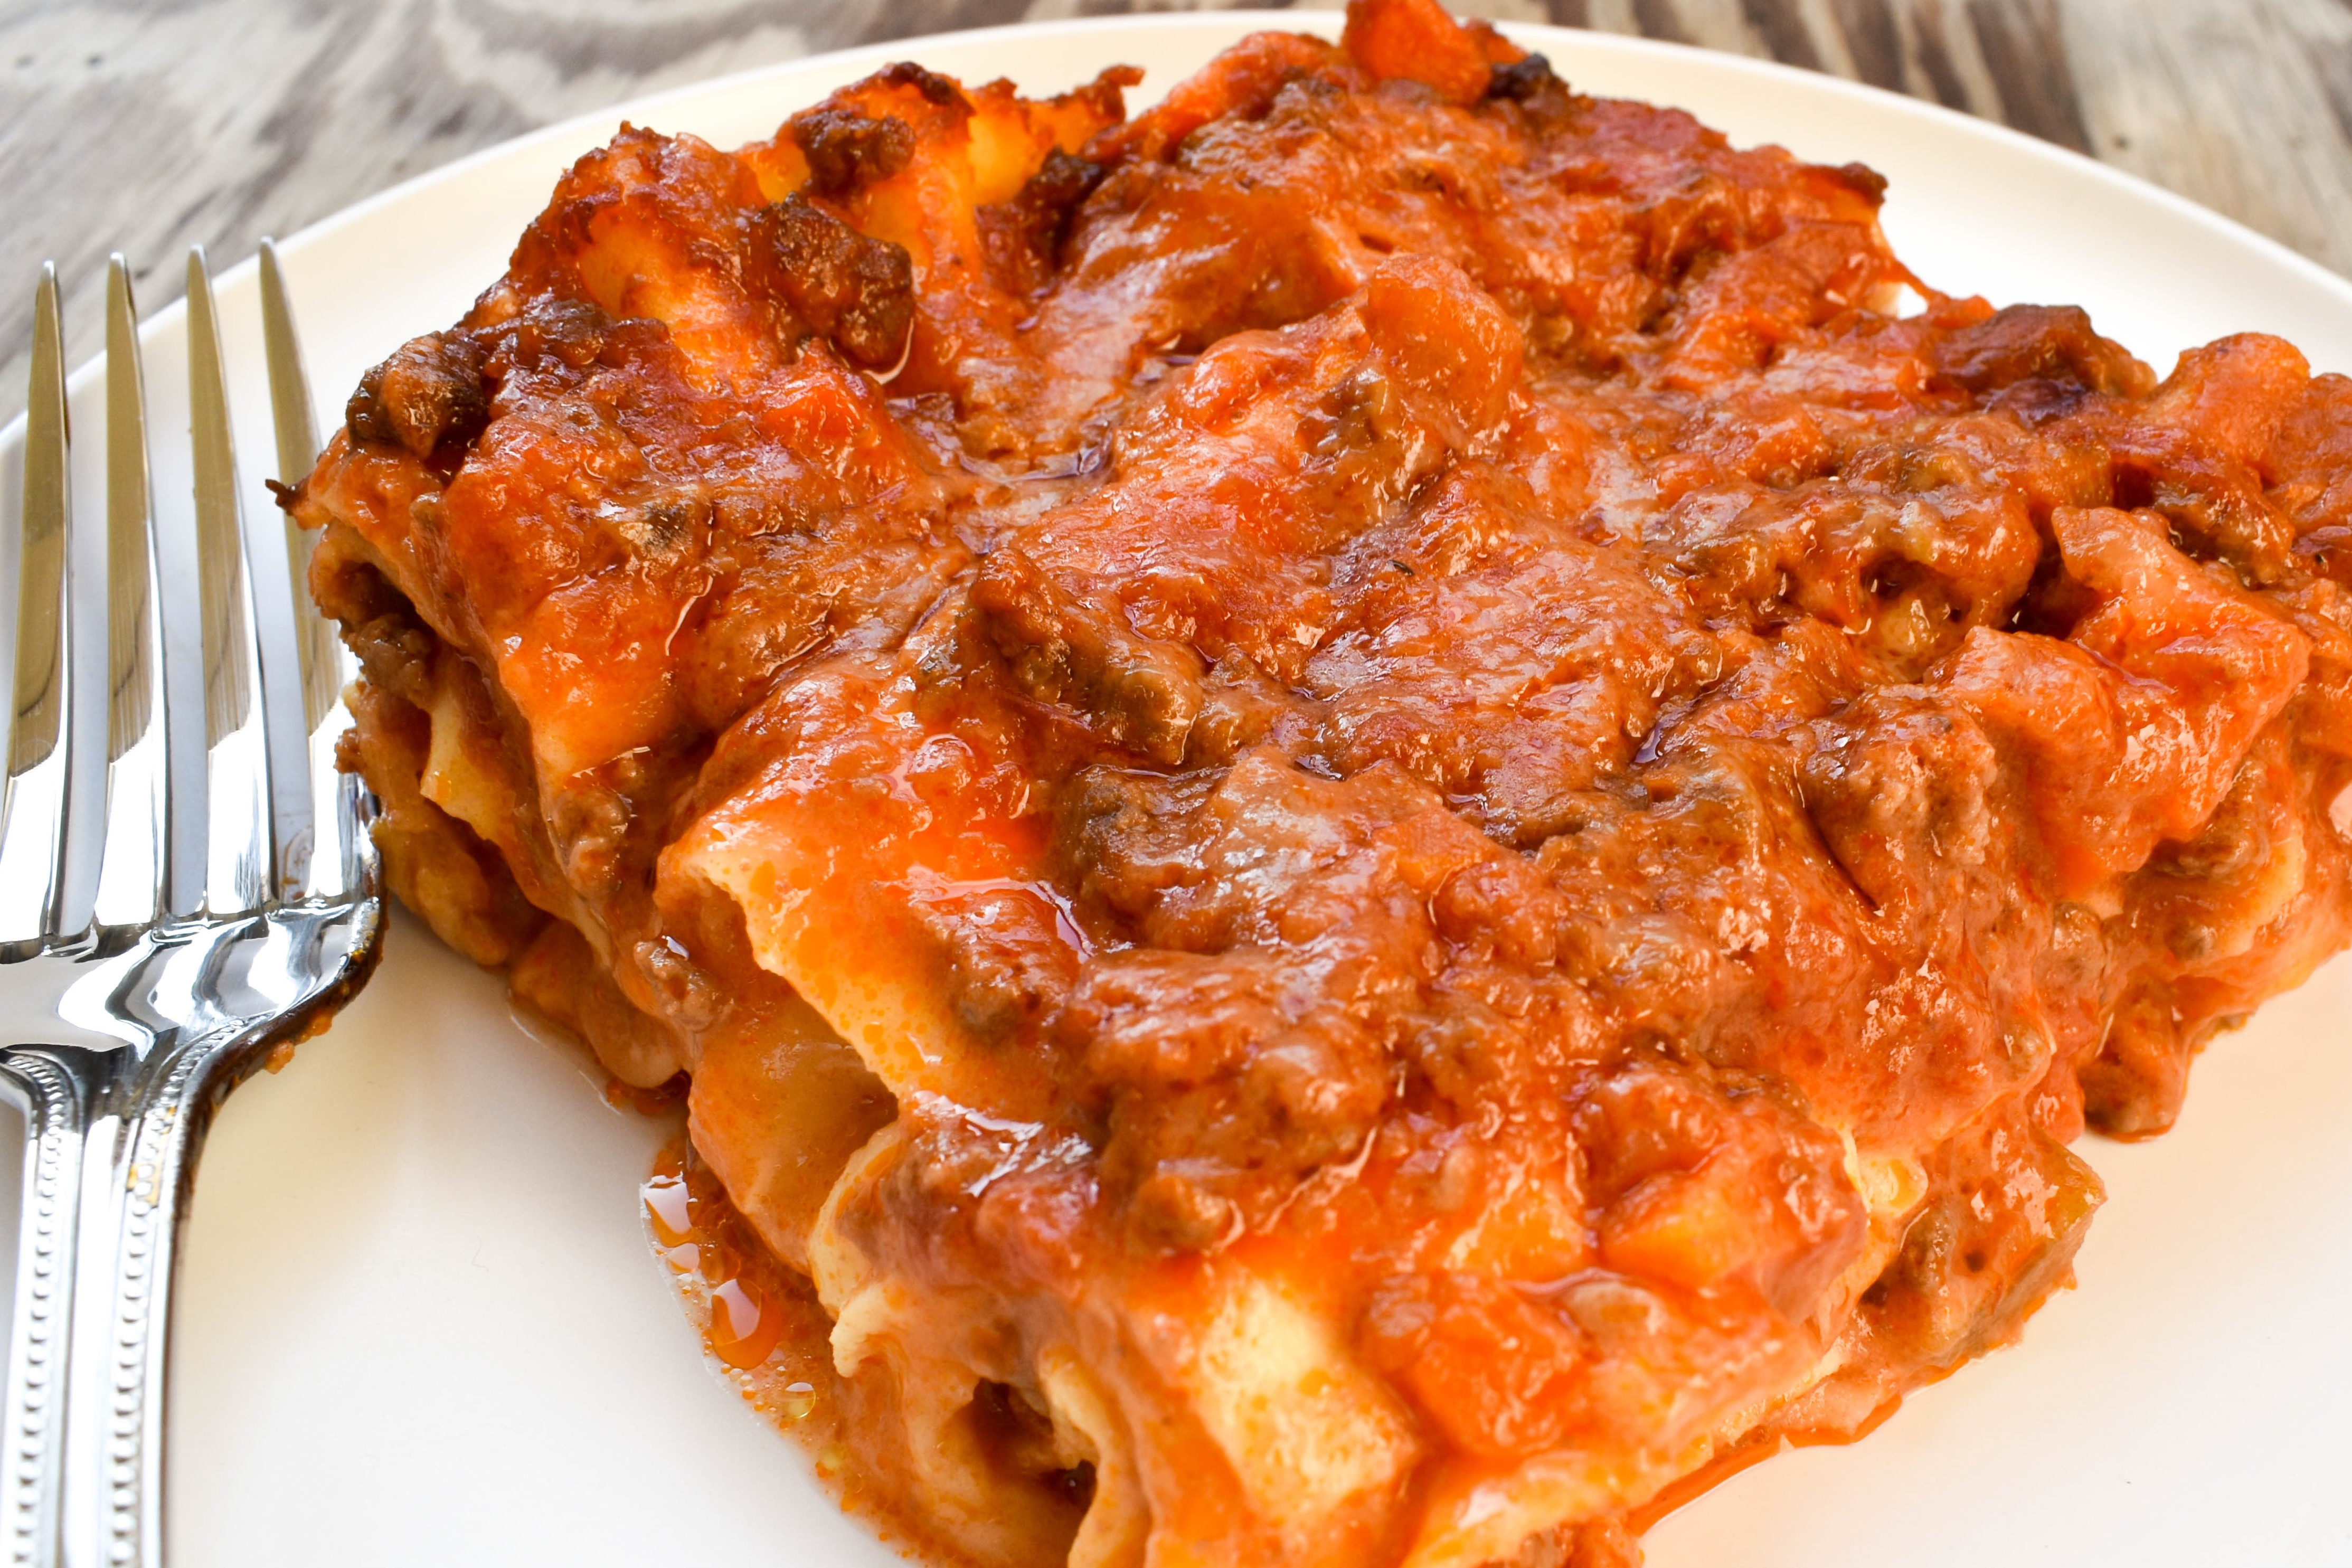 How do you make the best lasagne?